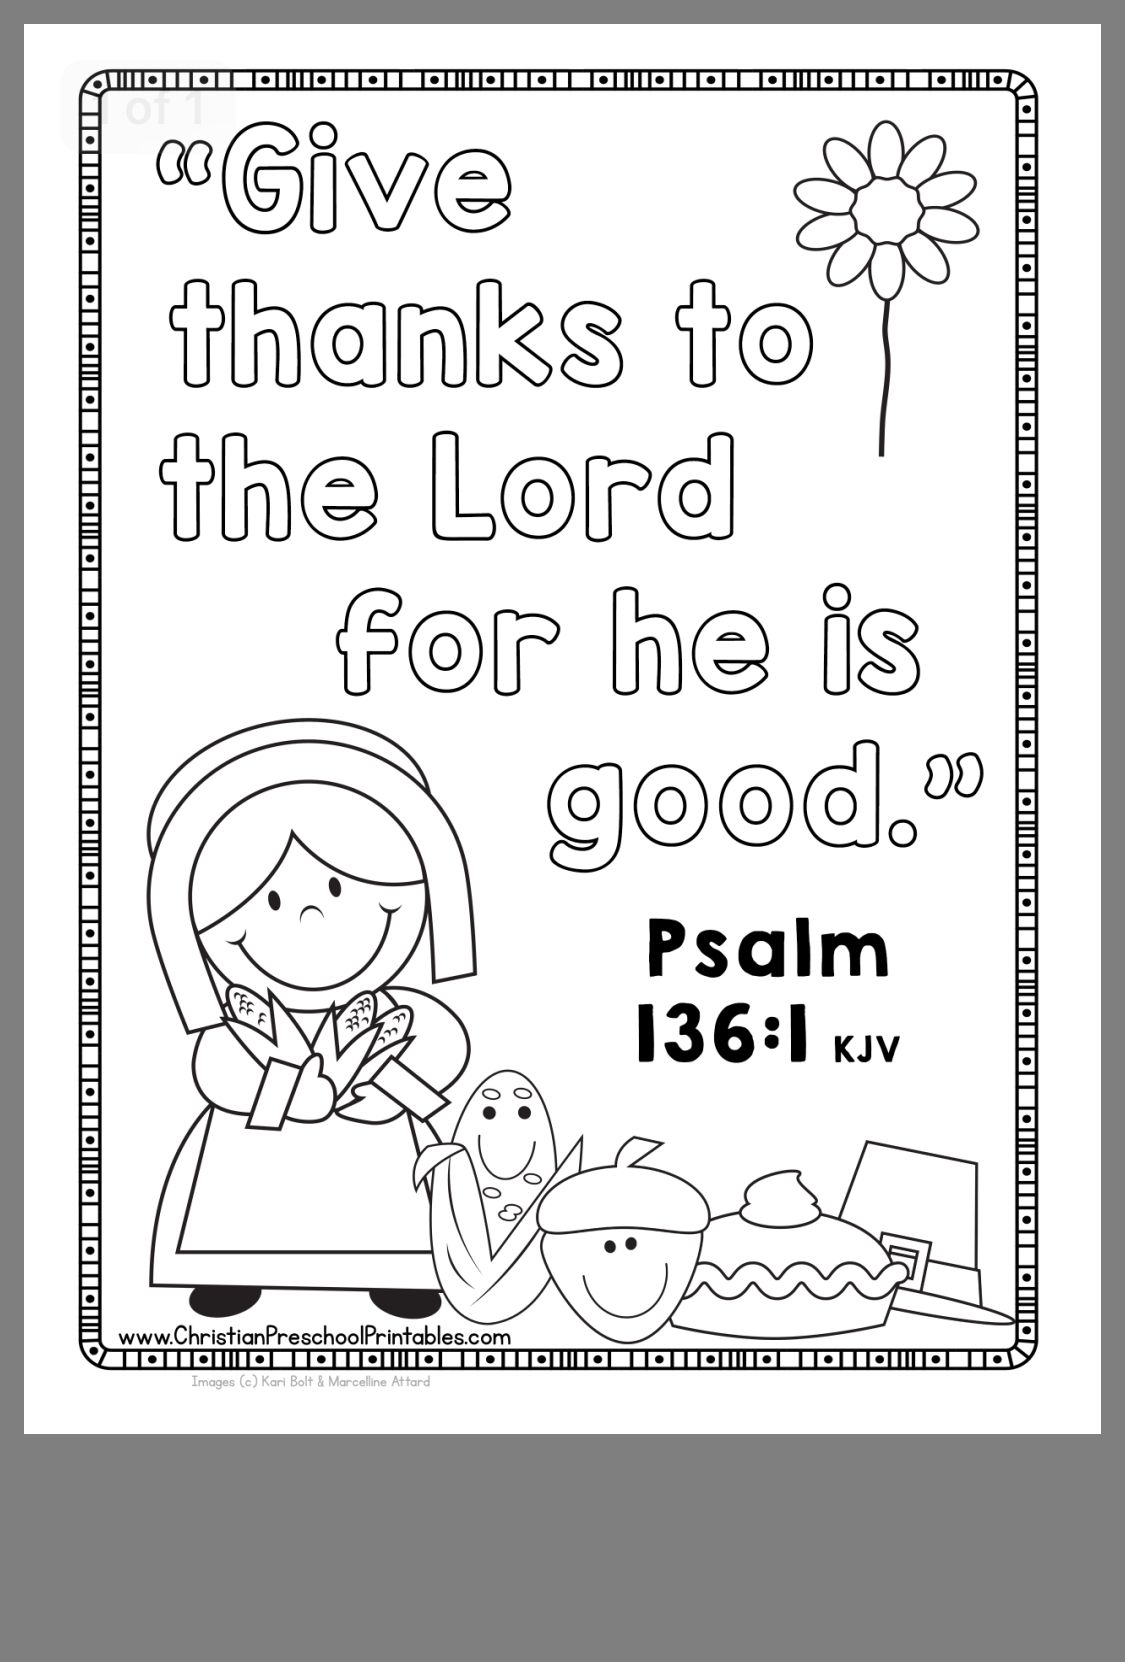 Pin By Sherry Opell On Sunday School Ideas